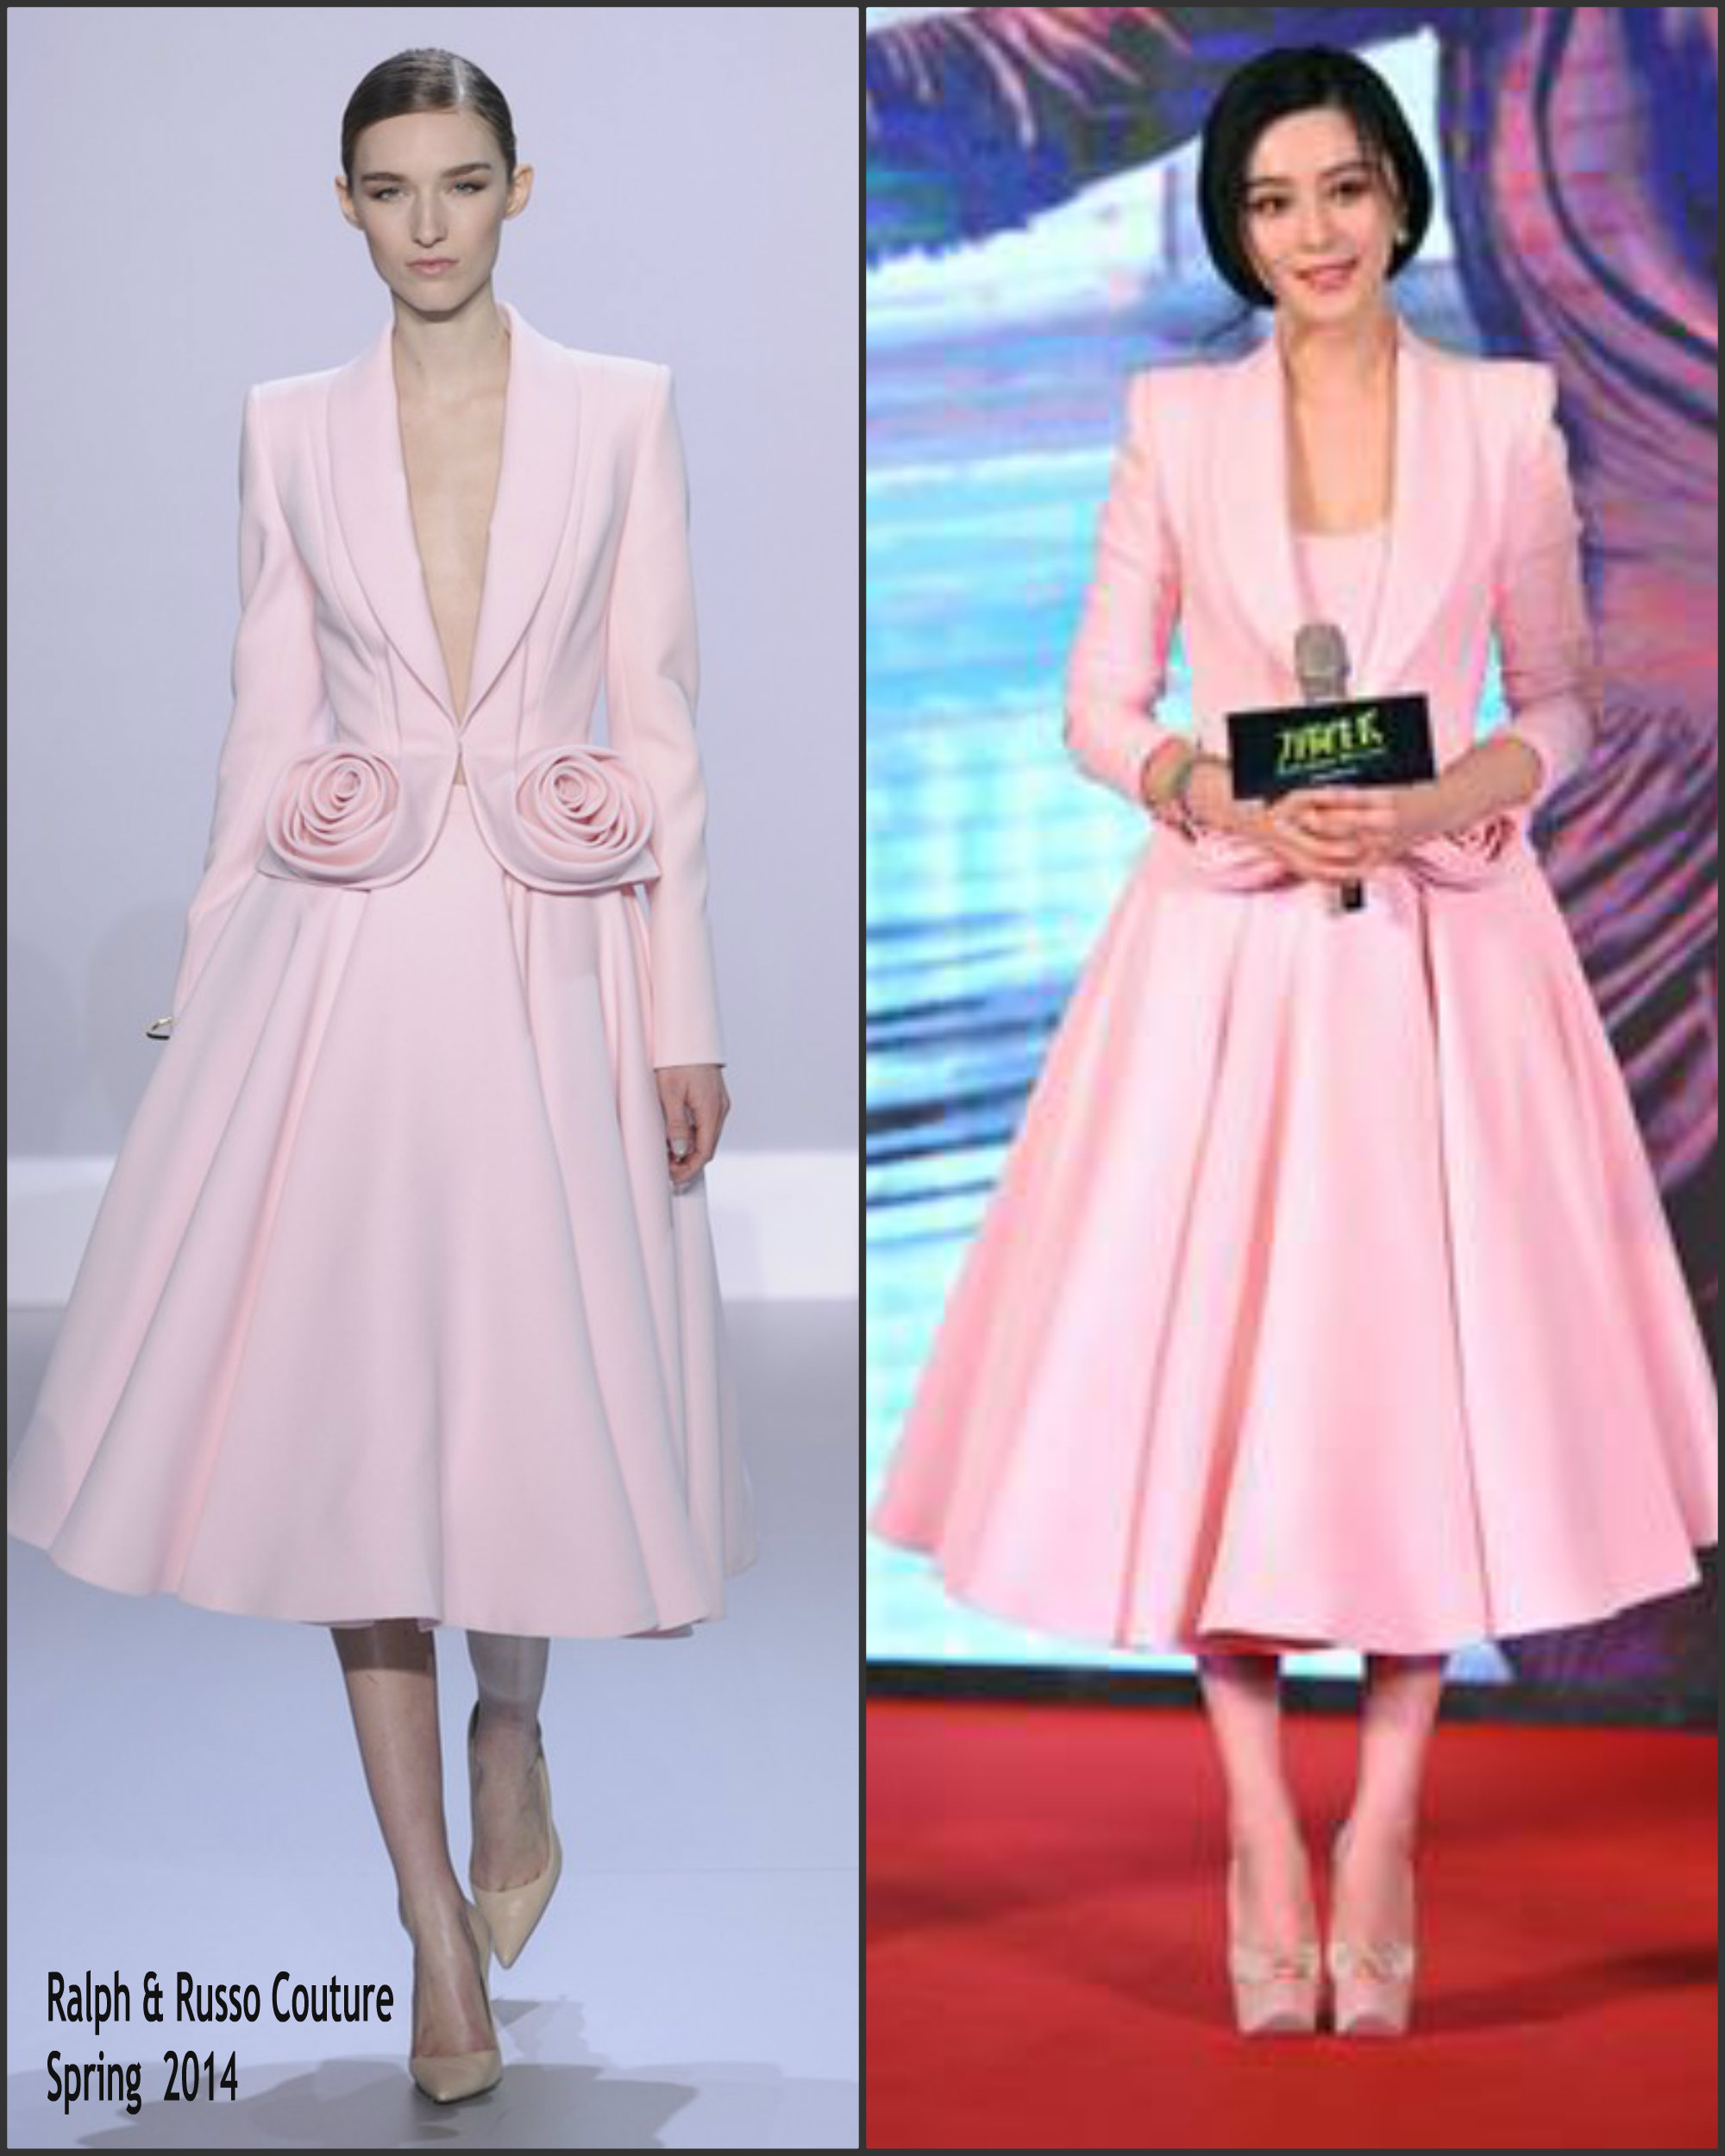 Fan-Bingbing-in-Ralph-Russo-Couture-Ever-Since-We-Love-Press-Conference